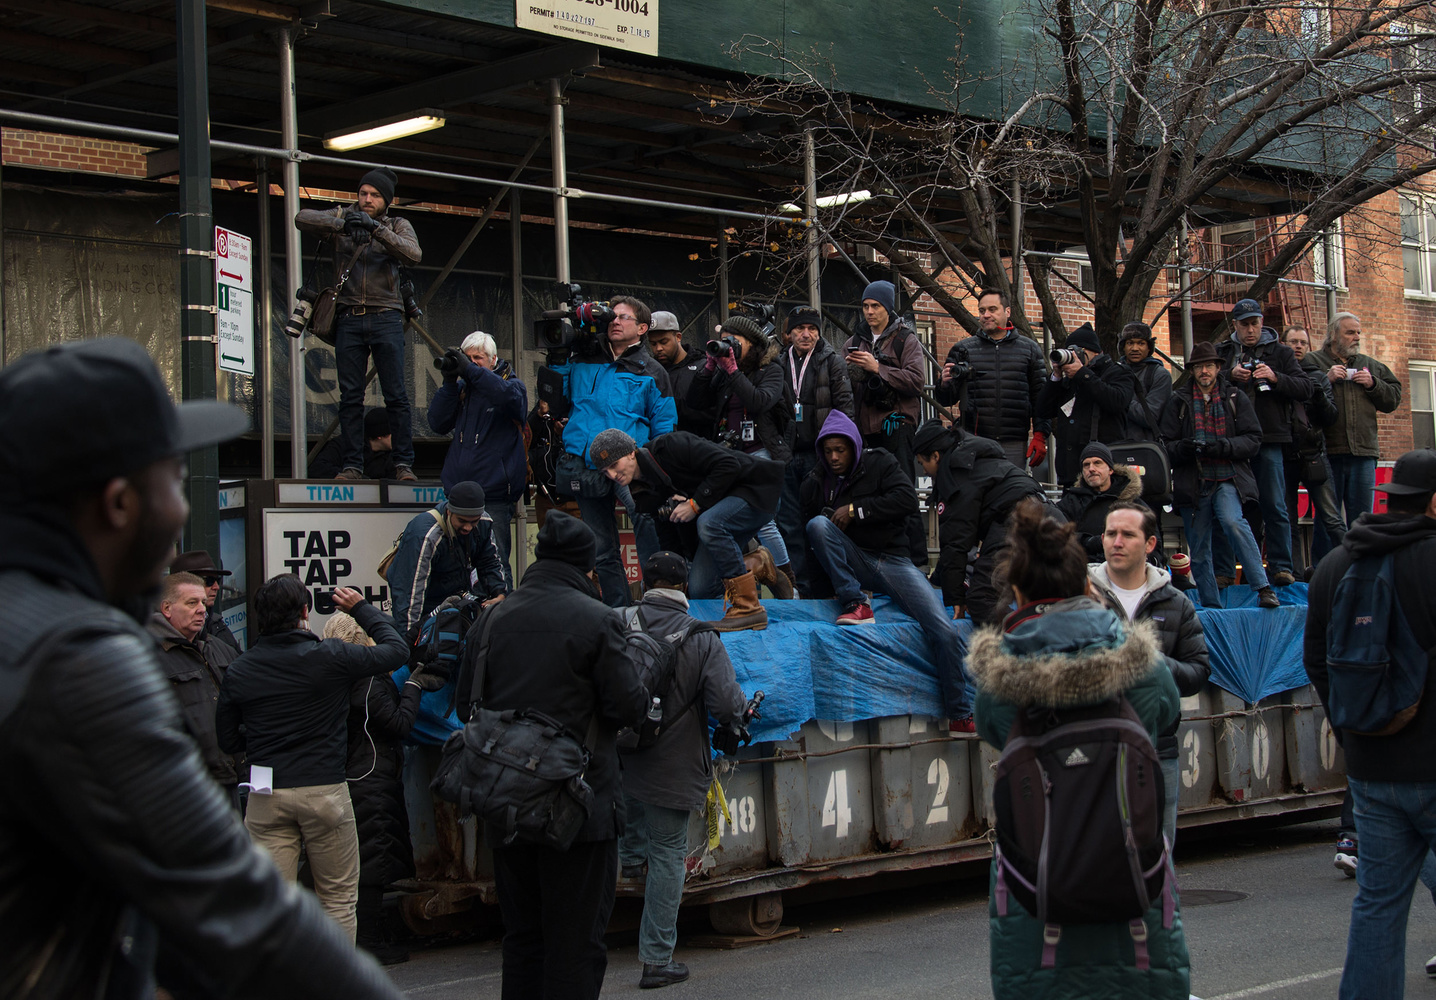 Photographers battle for a spot on a dumpster during the Millions March NYC.